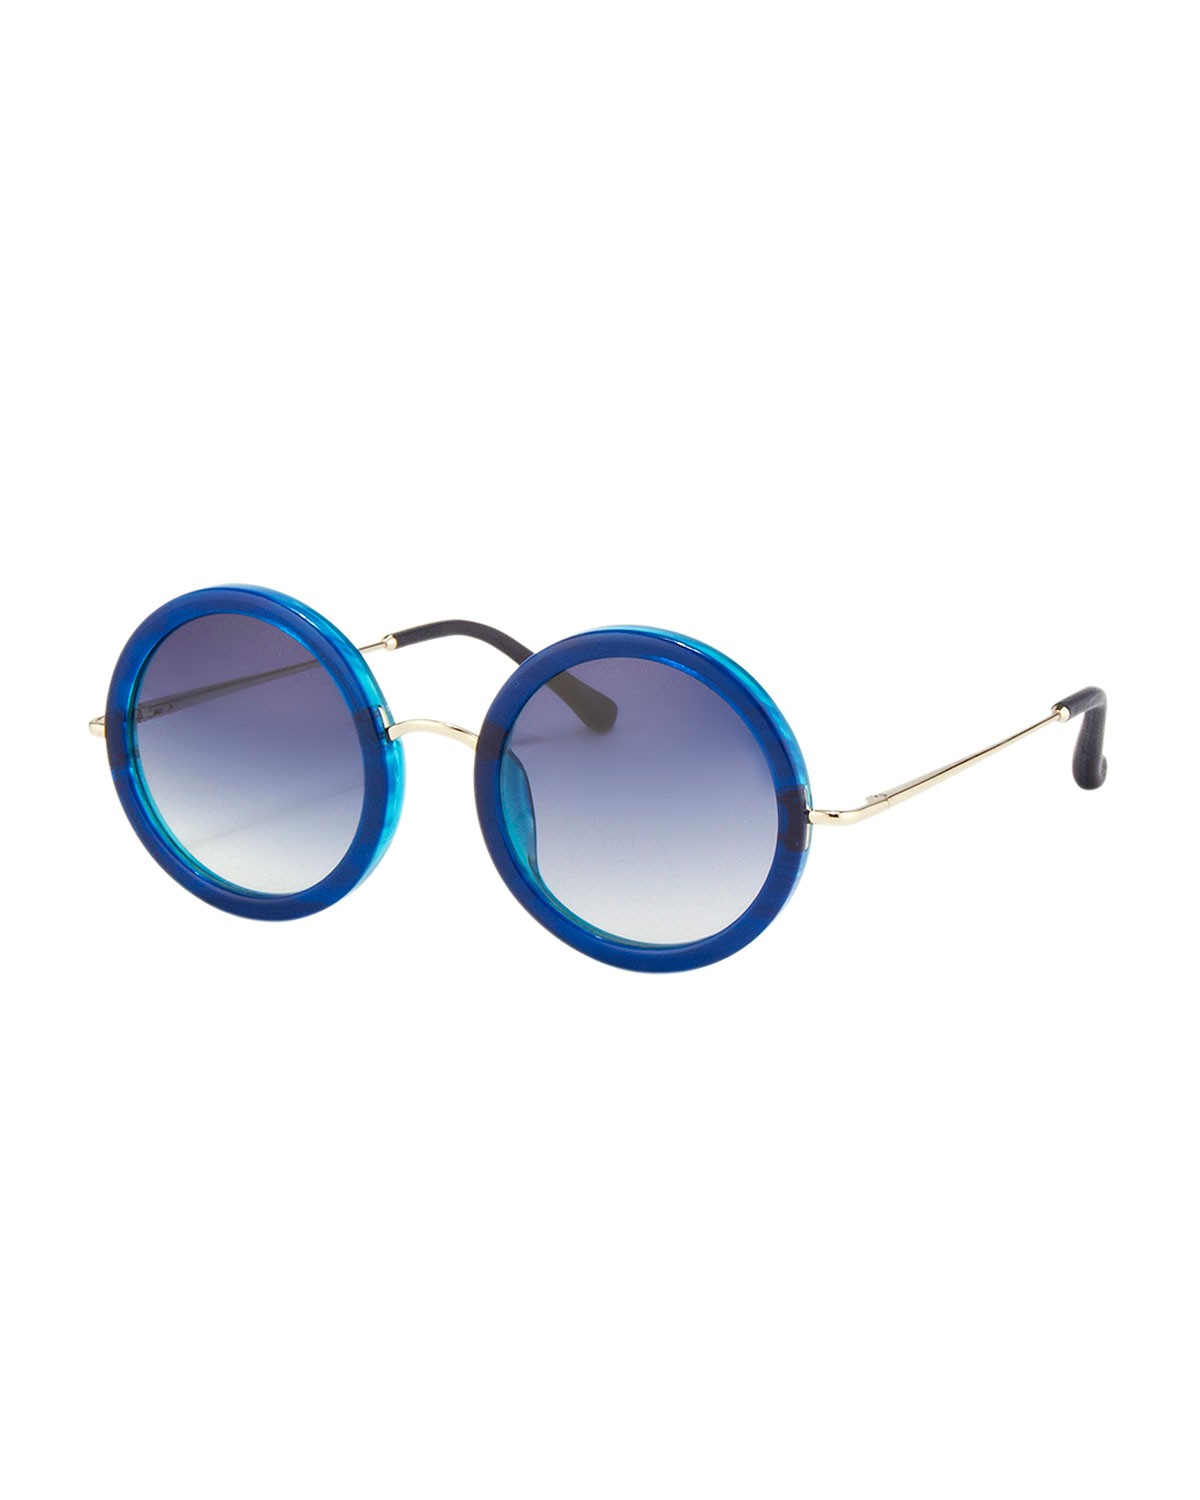 Round Circle Sunglasses, Blue - THE ROW - Blue